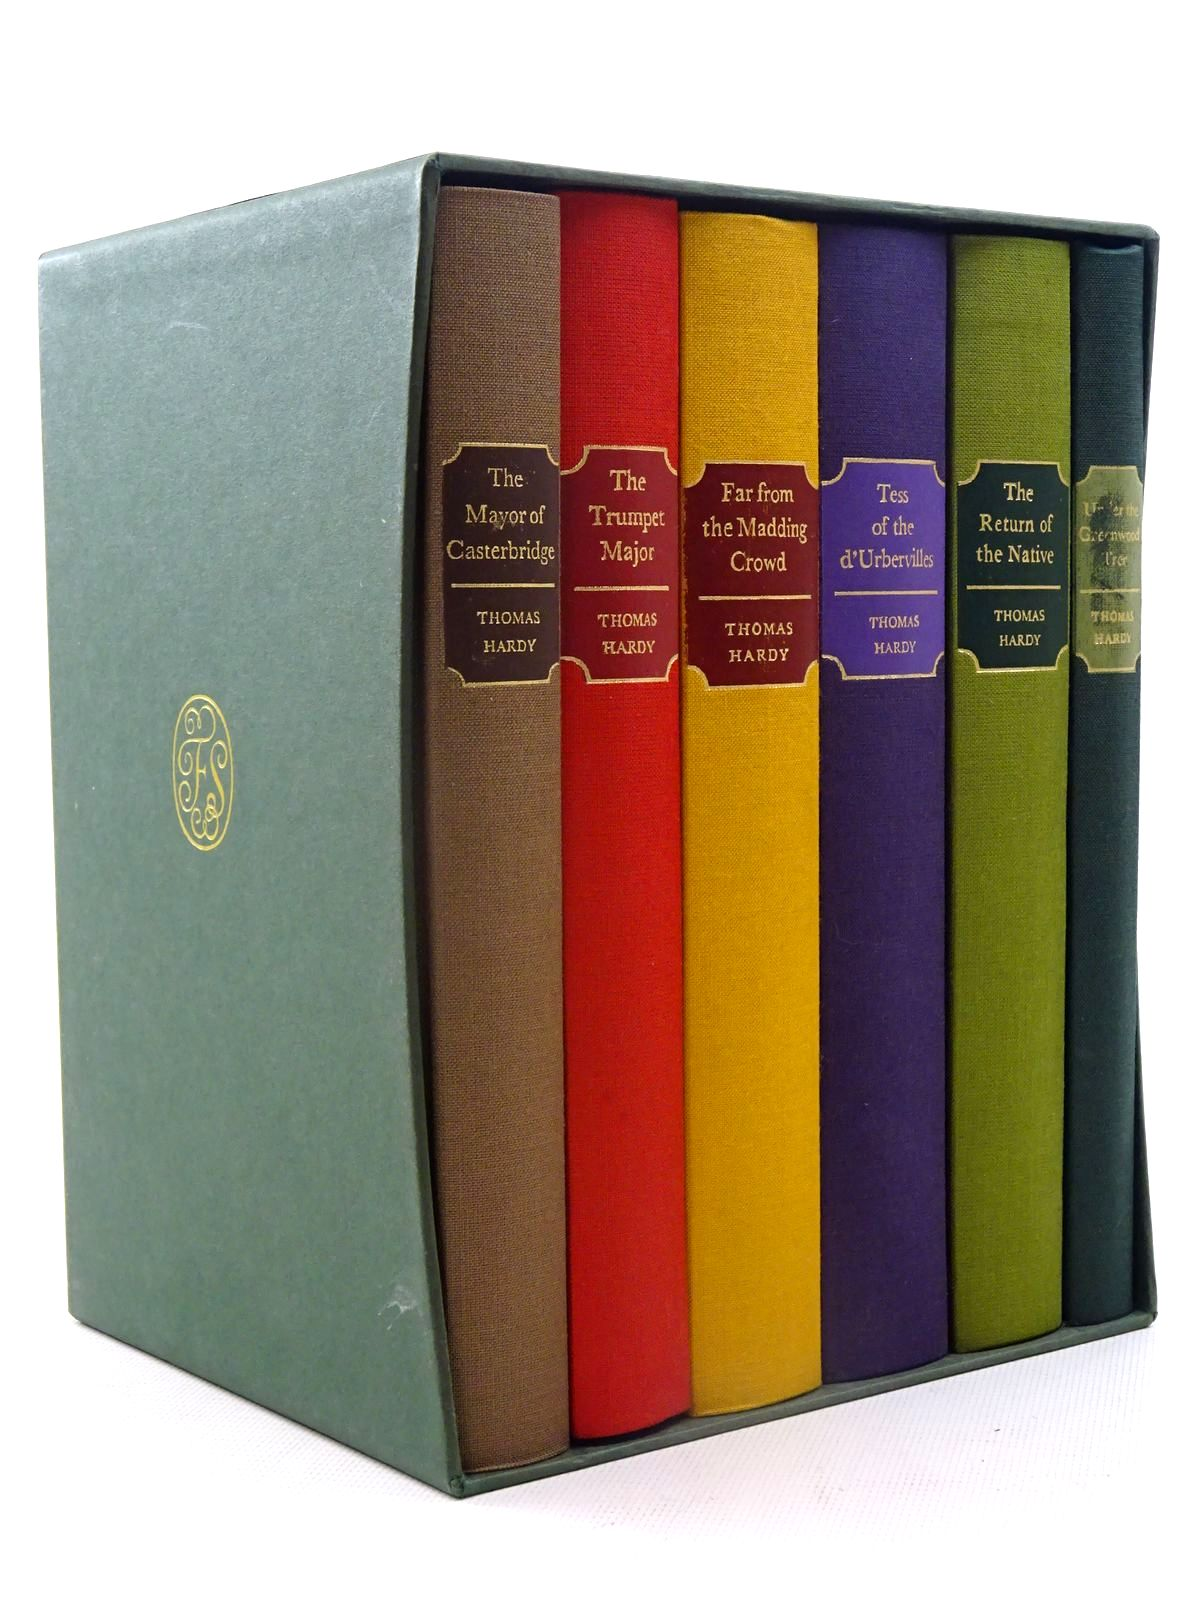 Photo of THE MAYOR OF CASTERBRIDGE; THE TRUMPET MAJOR; FAR FROM THE MADDING CROWD; TESS OF THE D'URBERVILLES; THE RETURN OF THE NATIVE; UNDER THE GREENWOOD TREE (6 VOLUMES) written by Hardy, Thomas published by Folio Society (STOCK CODE: 2125462)  for sale by Stella & Rose's Books